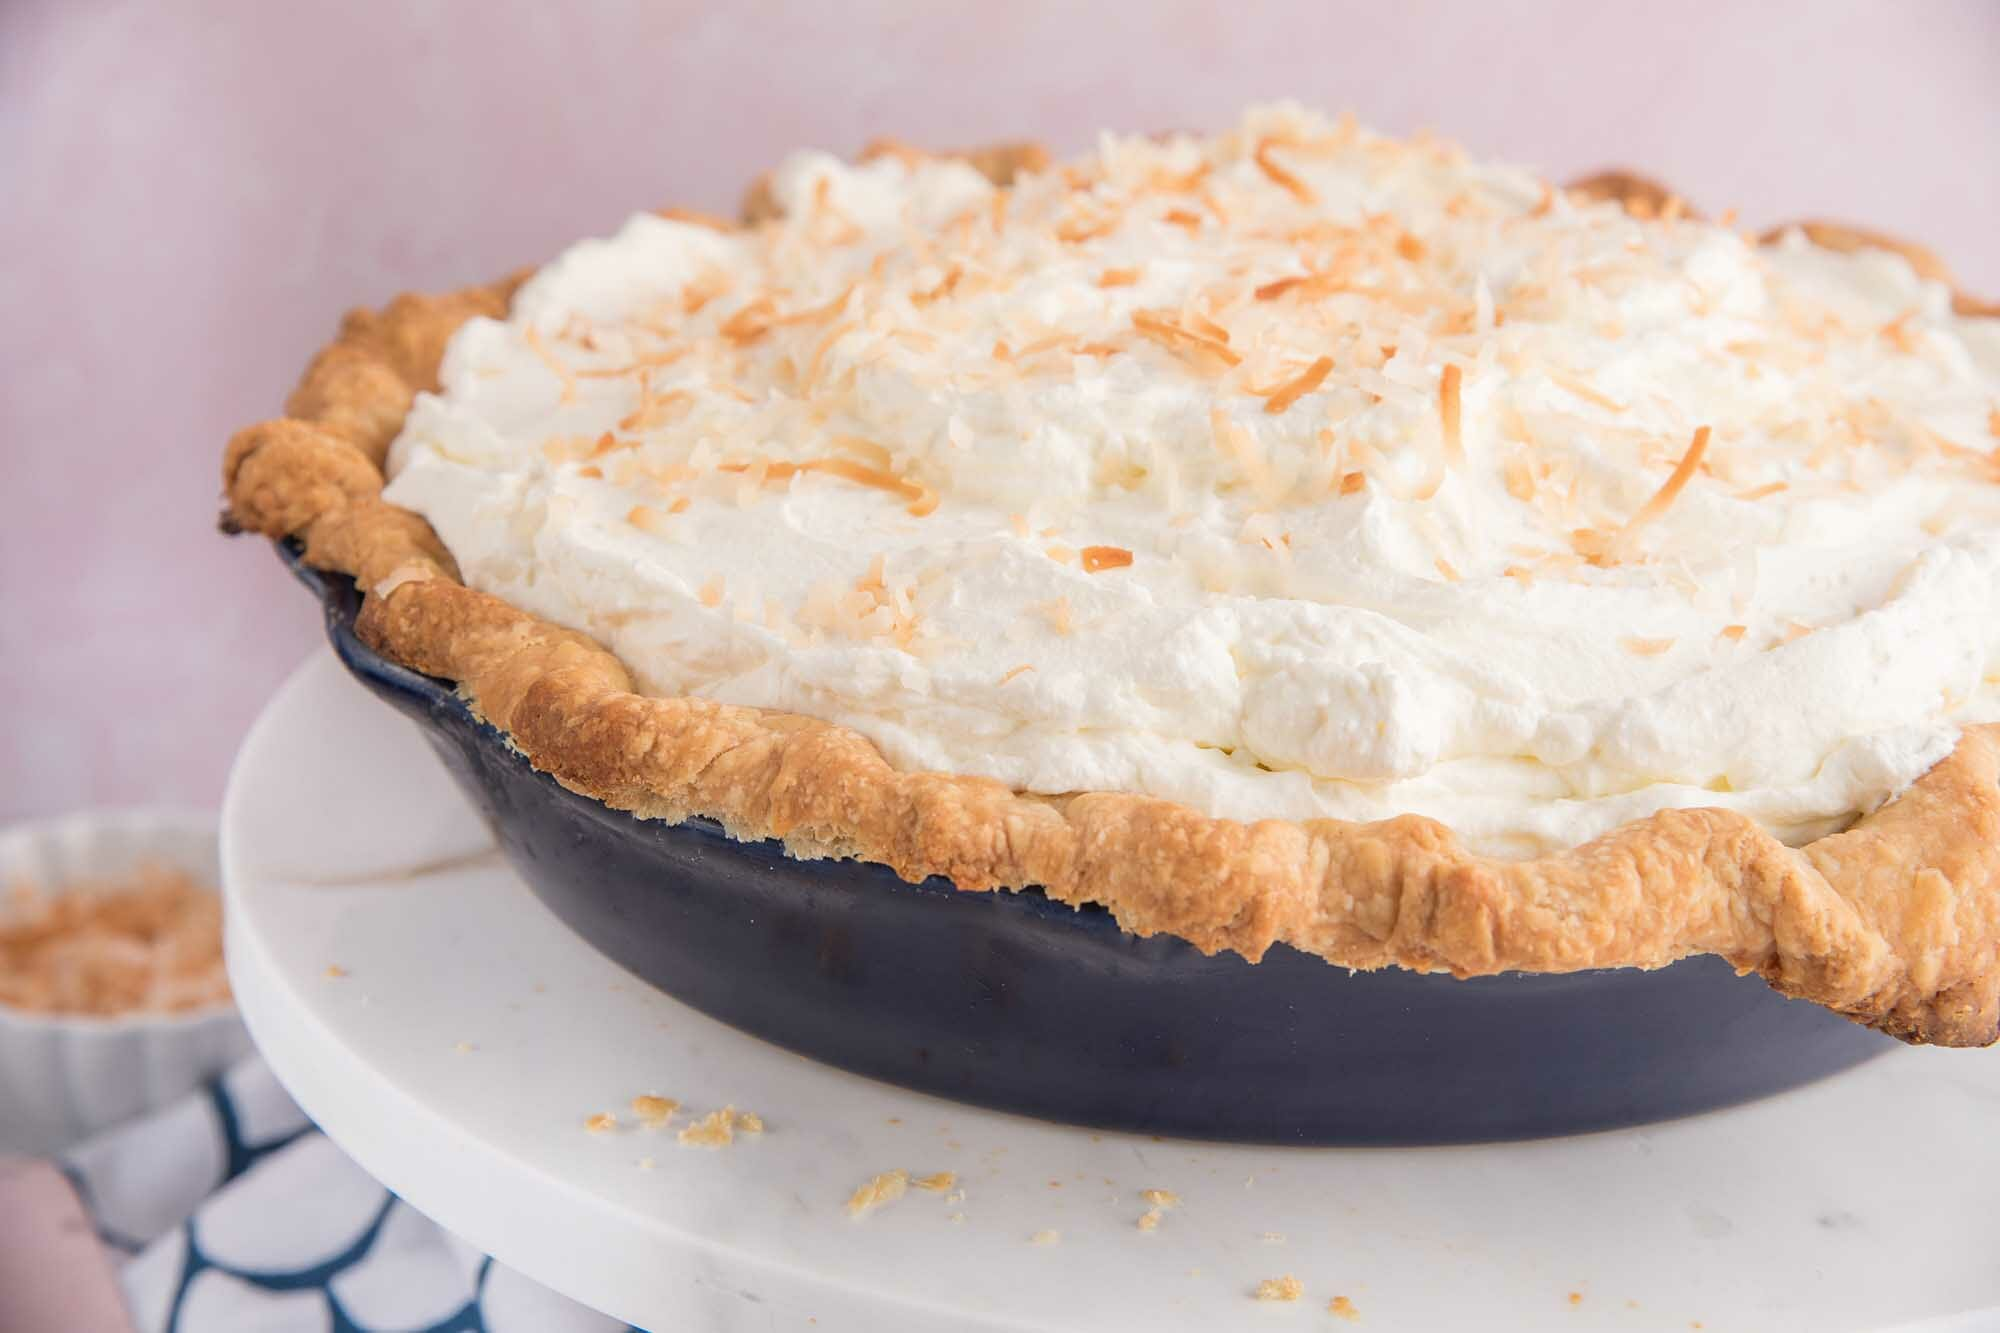 Side view of an easy coconut cream pie on a cake stand.